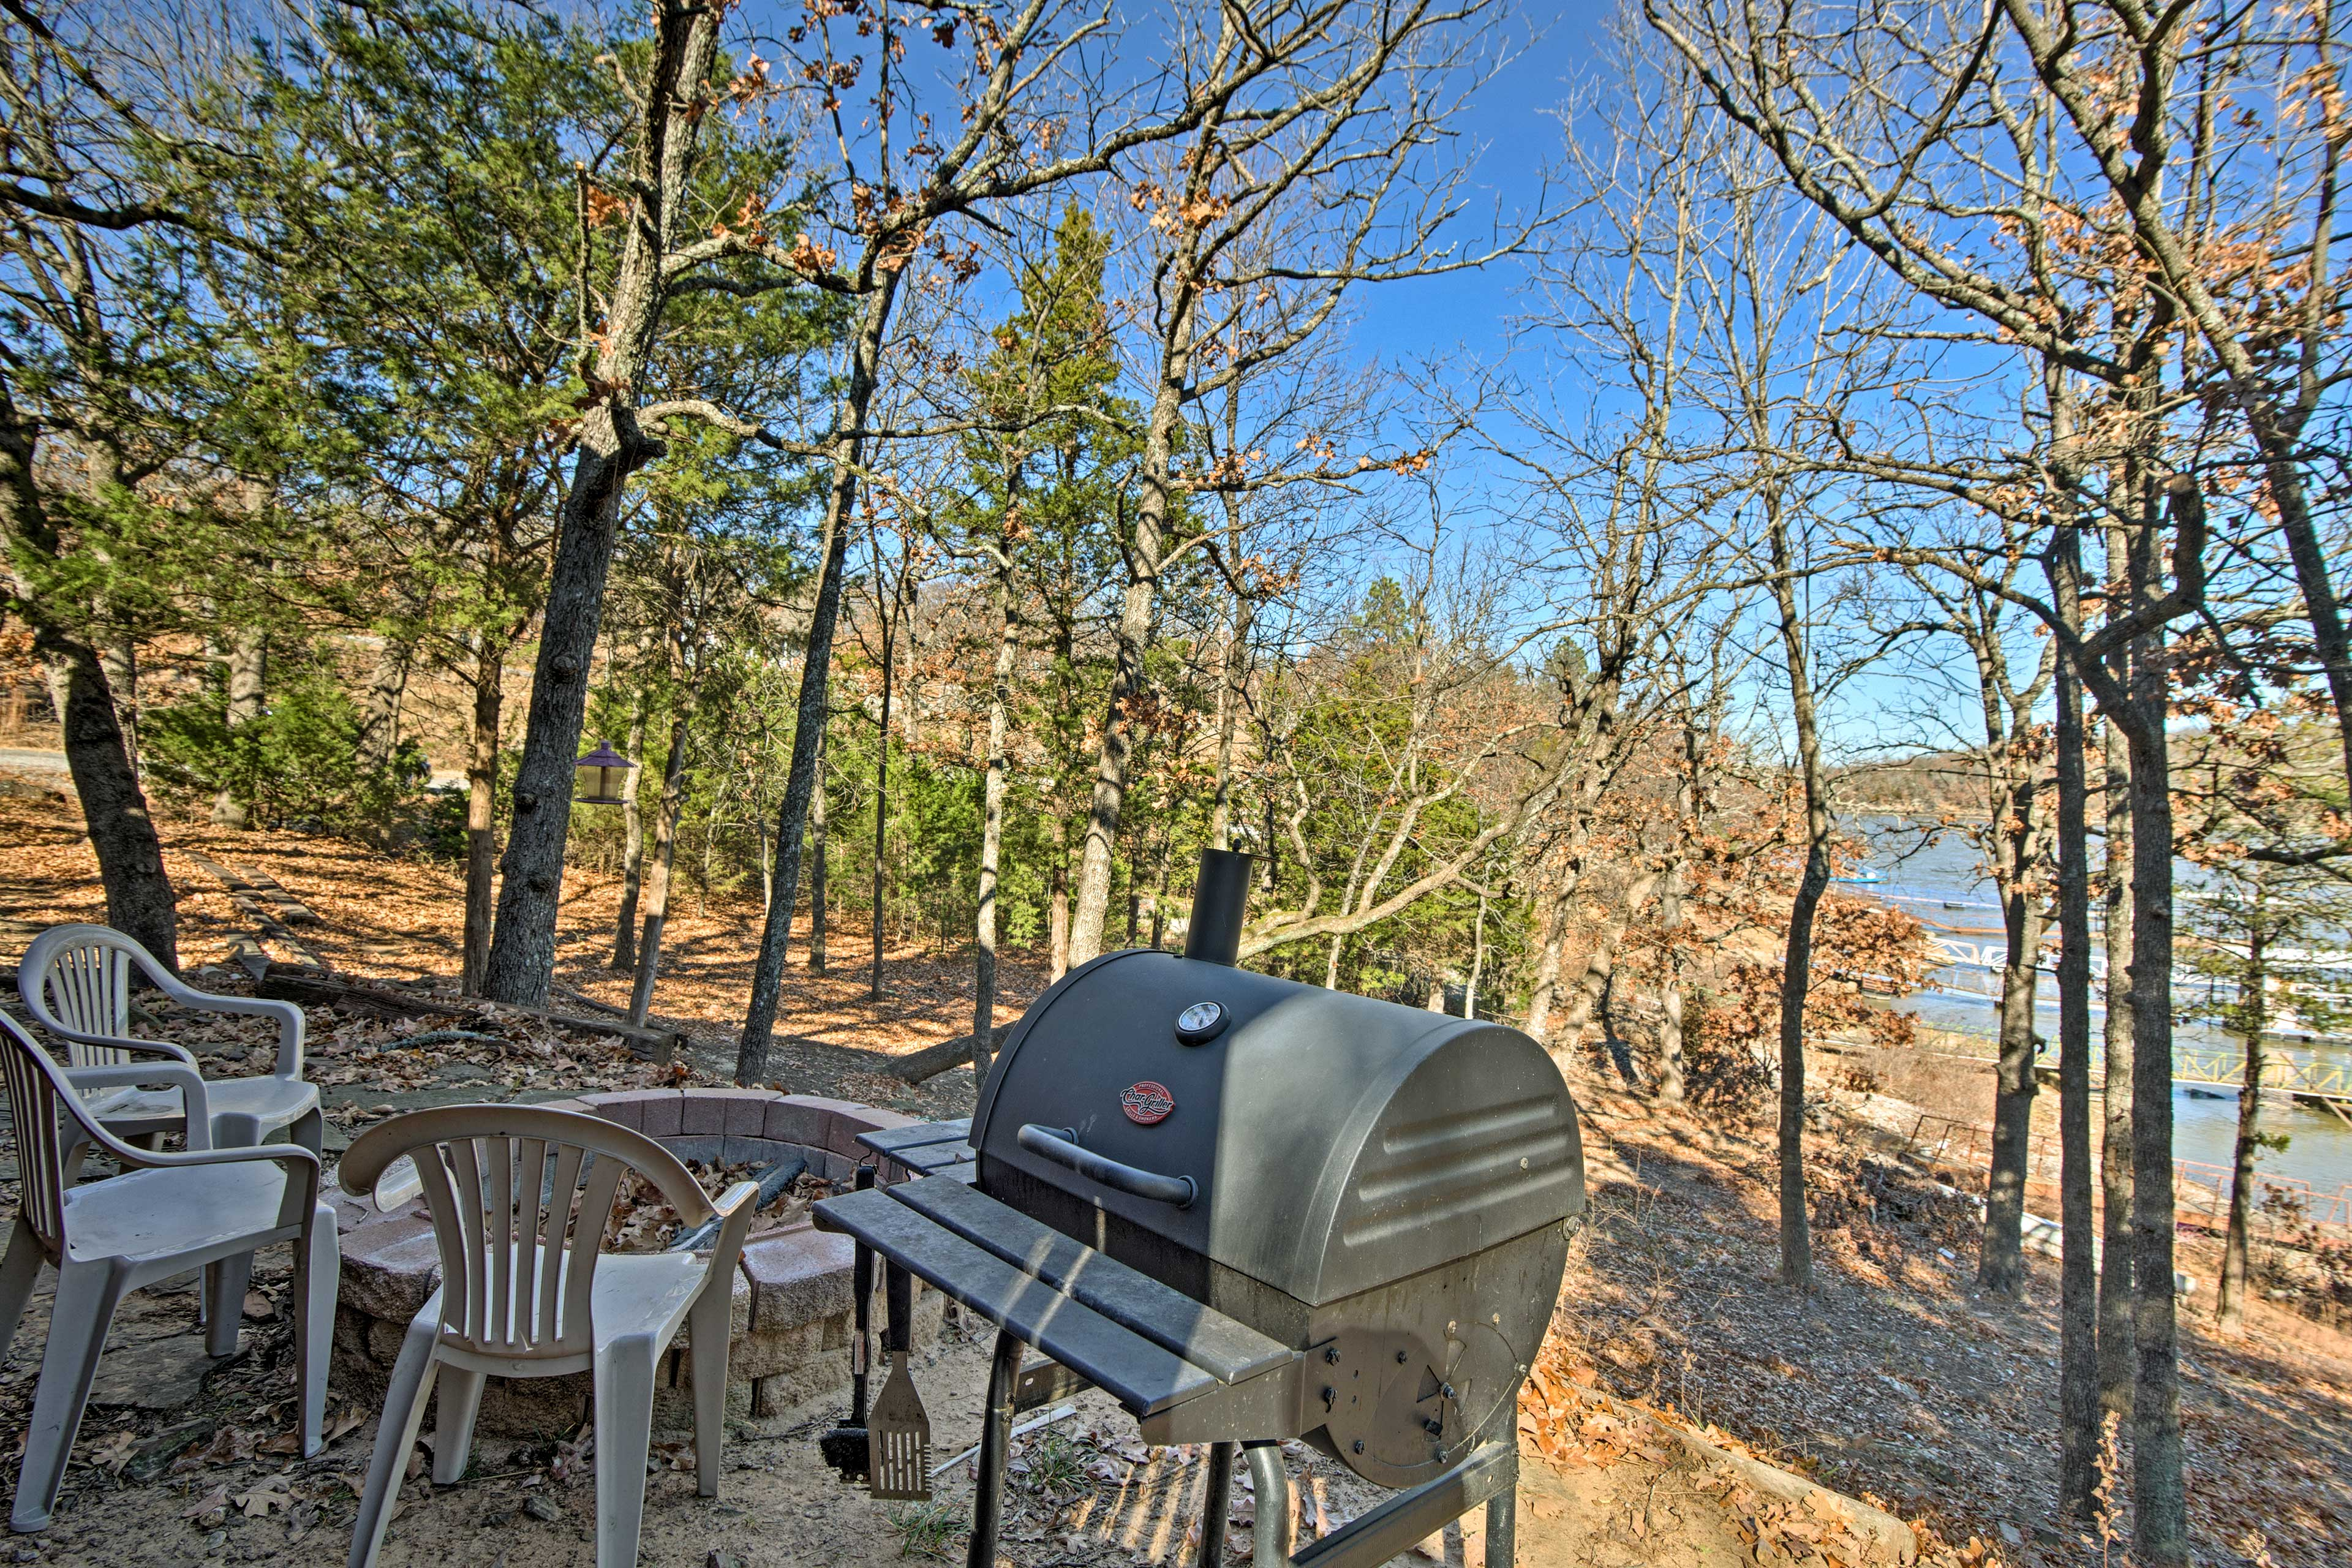 Grill up a tasty meal or gather around the fire pit to roast marshmallows!